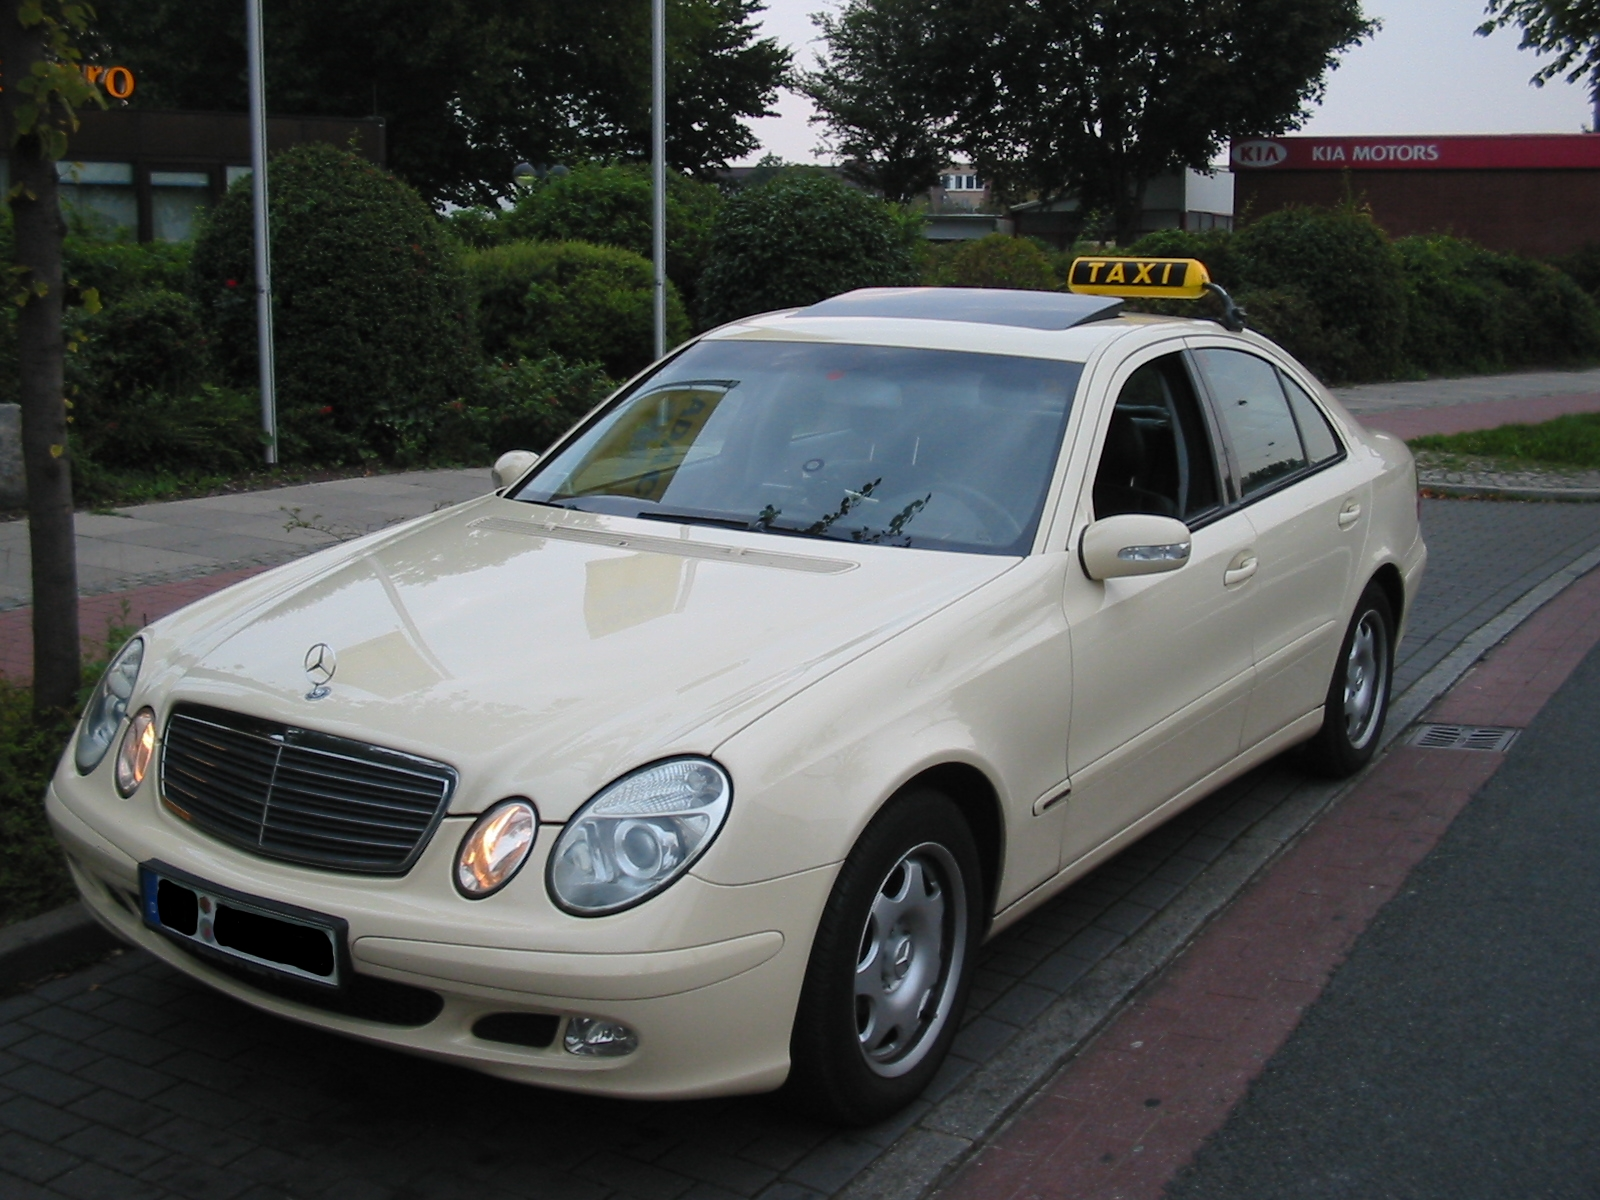 datei:taxi - mercedes e-klasse alternativ – wikipedia